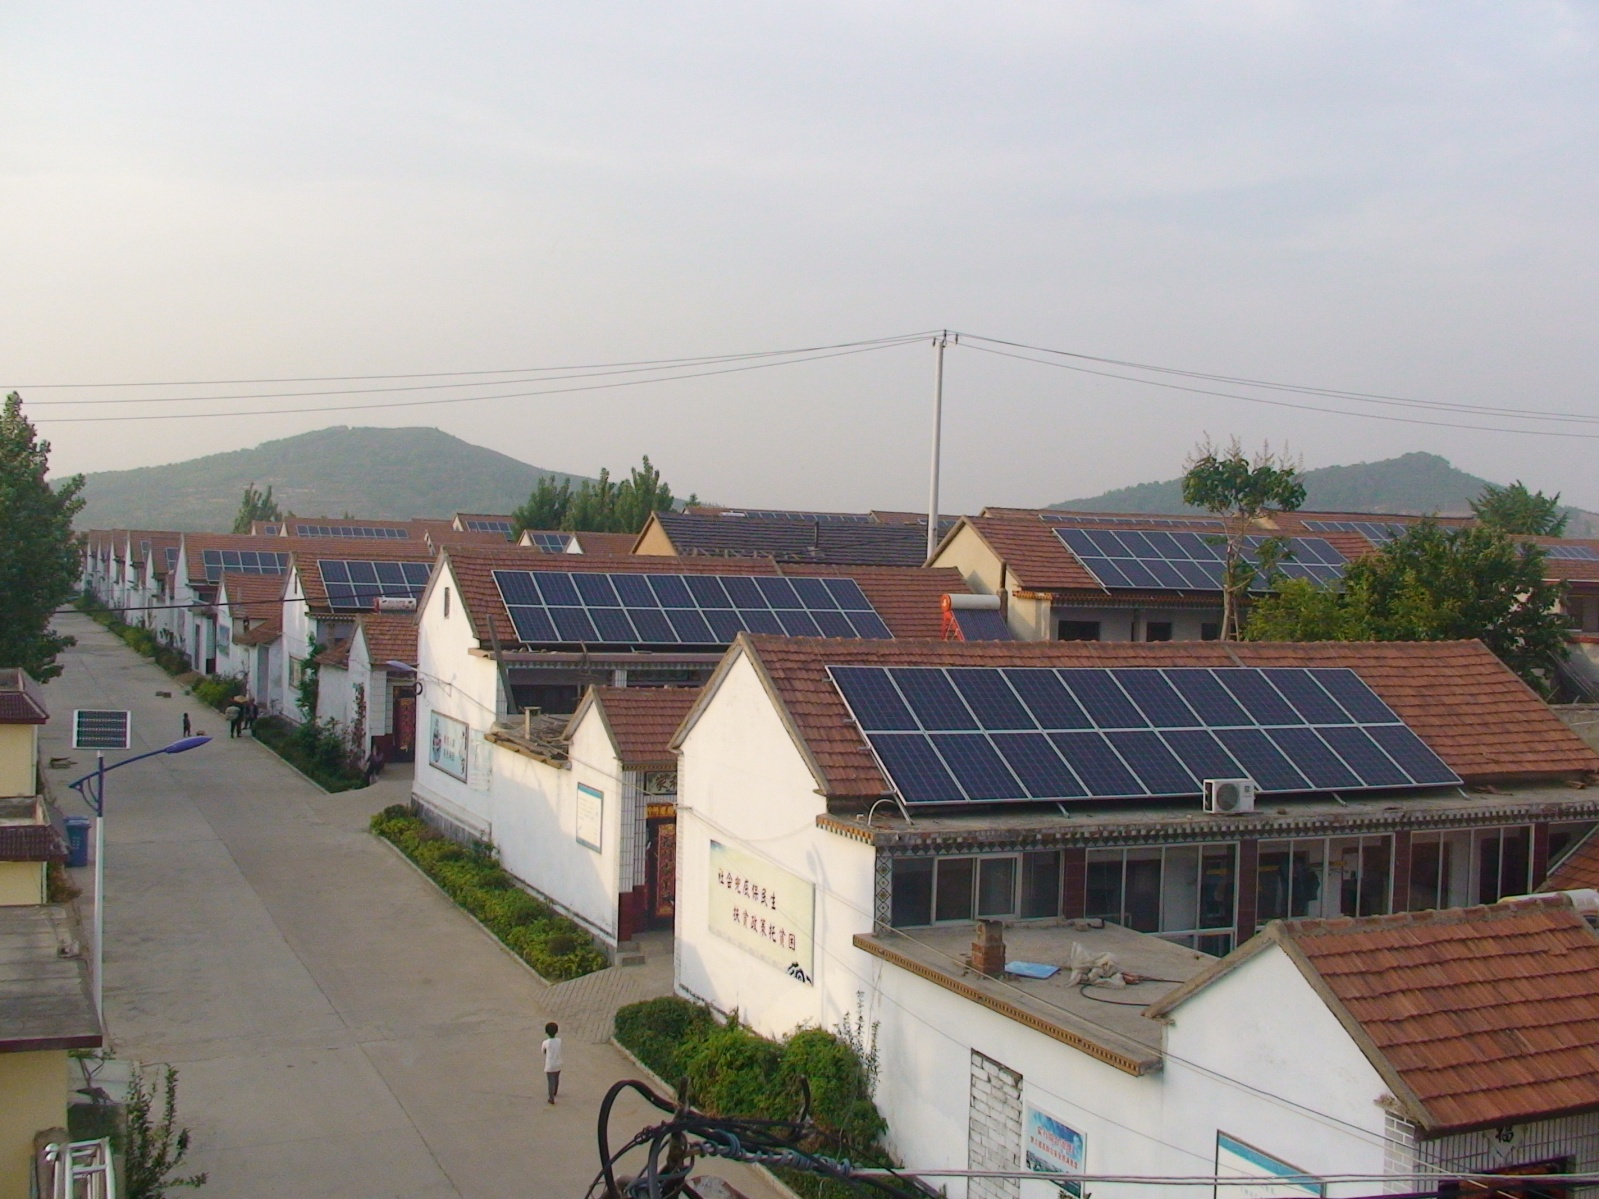 Dongshan Village Residensital Solar PV Power Sytem